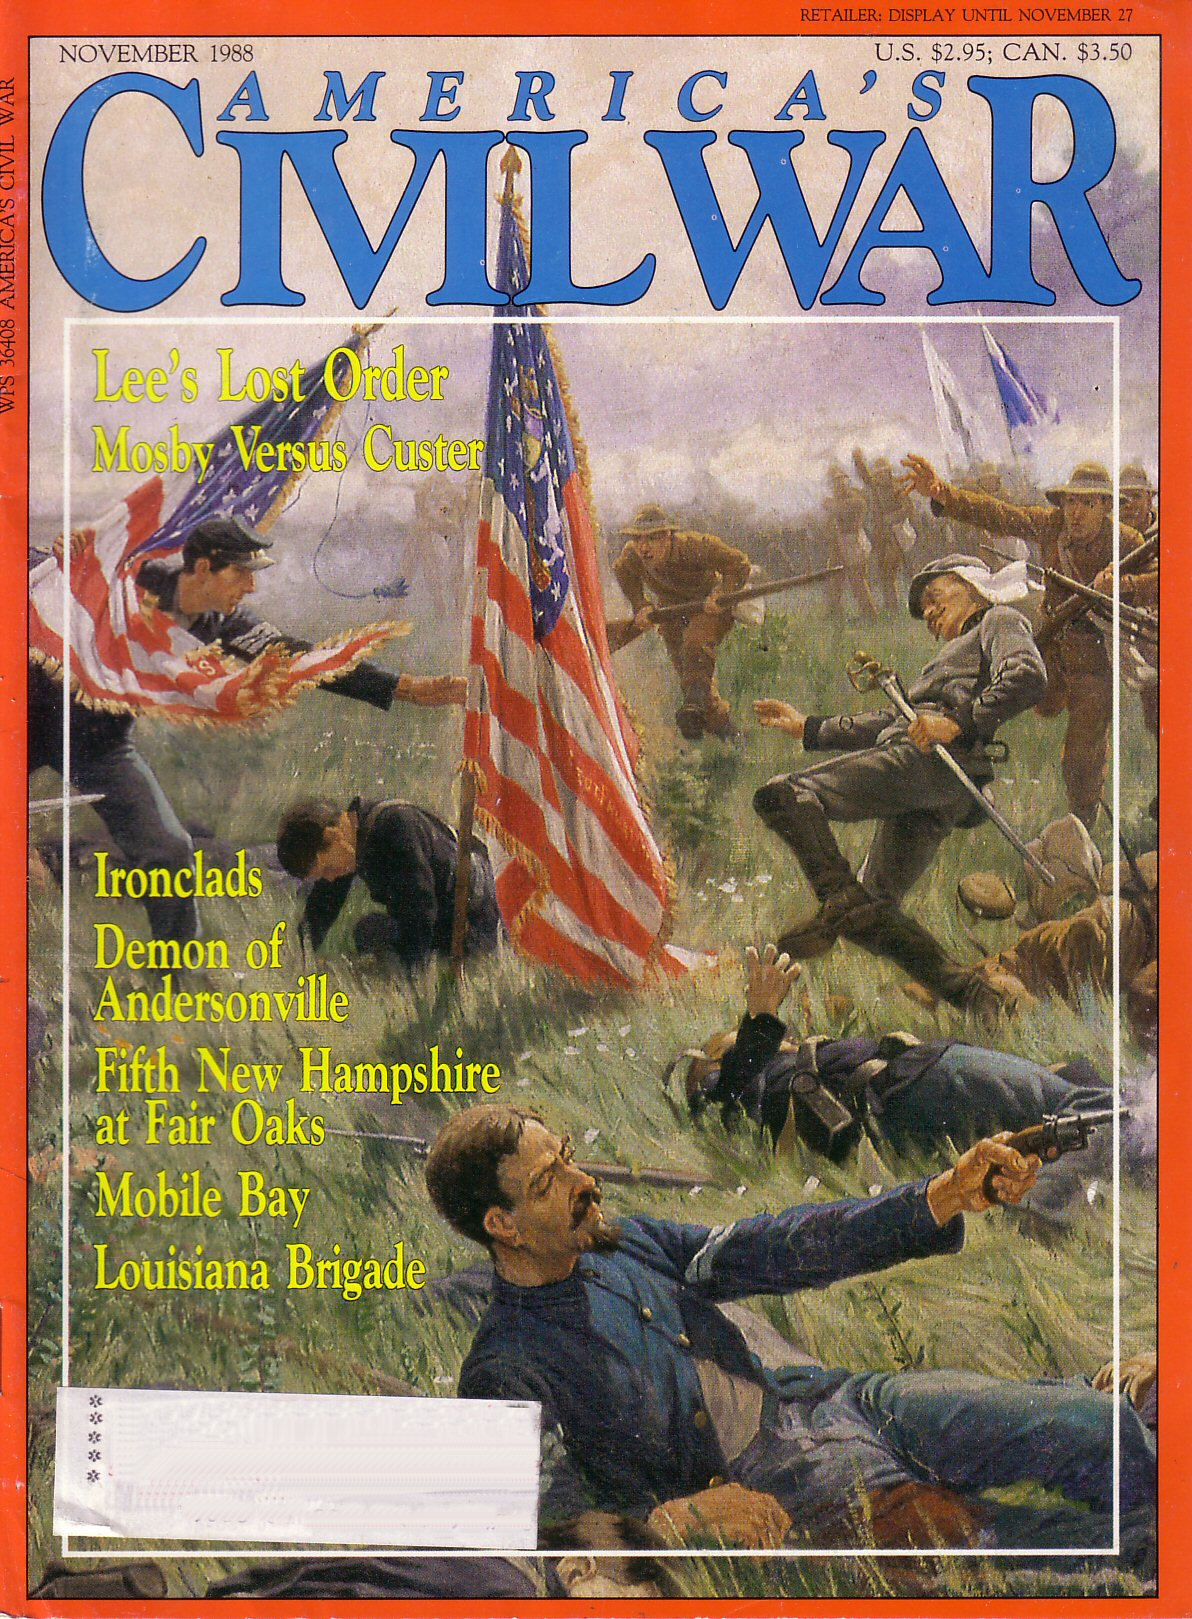 Americas Civil War, Volume 1, Number 4 (November 1998)